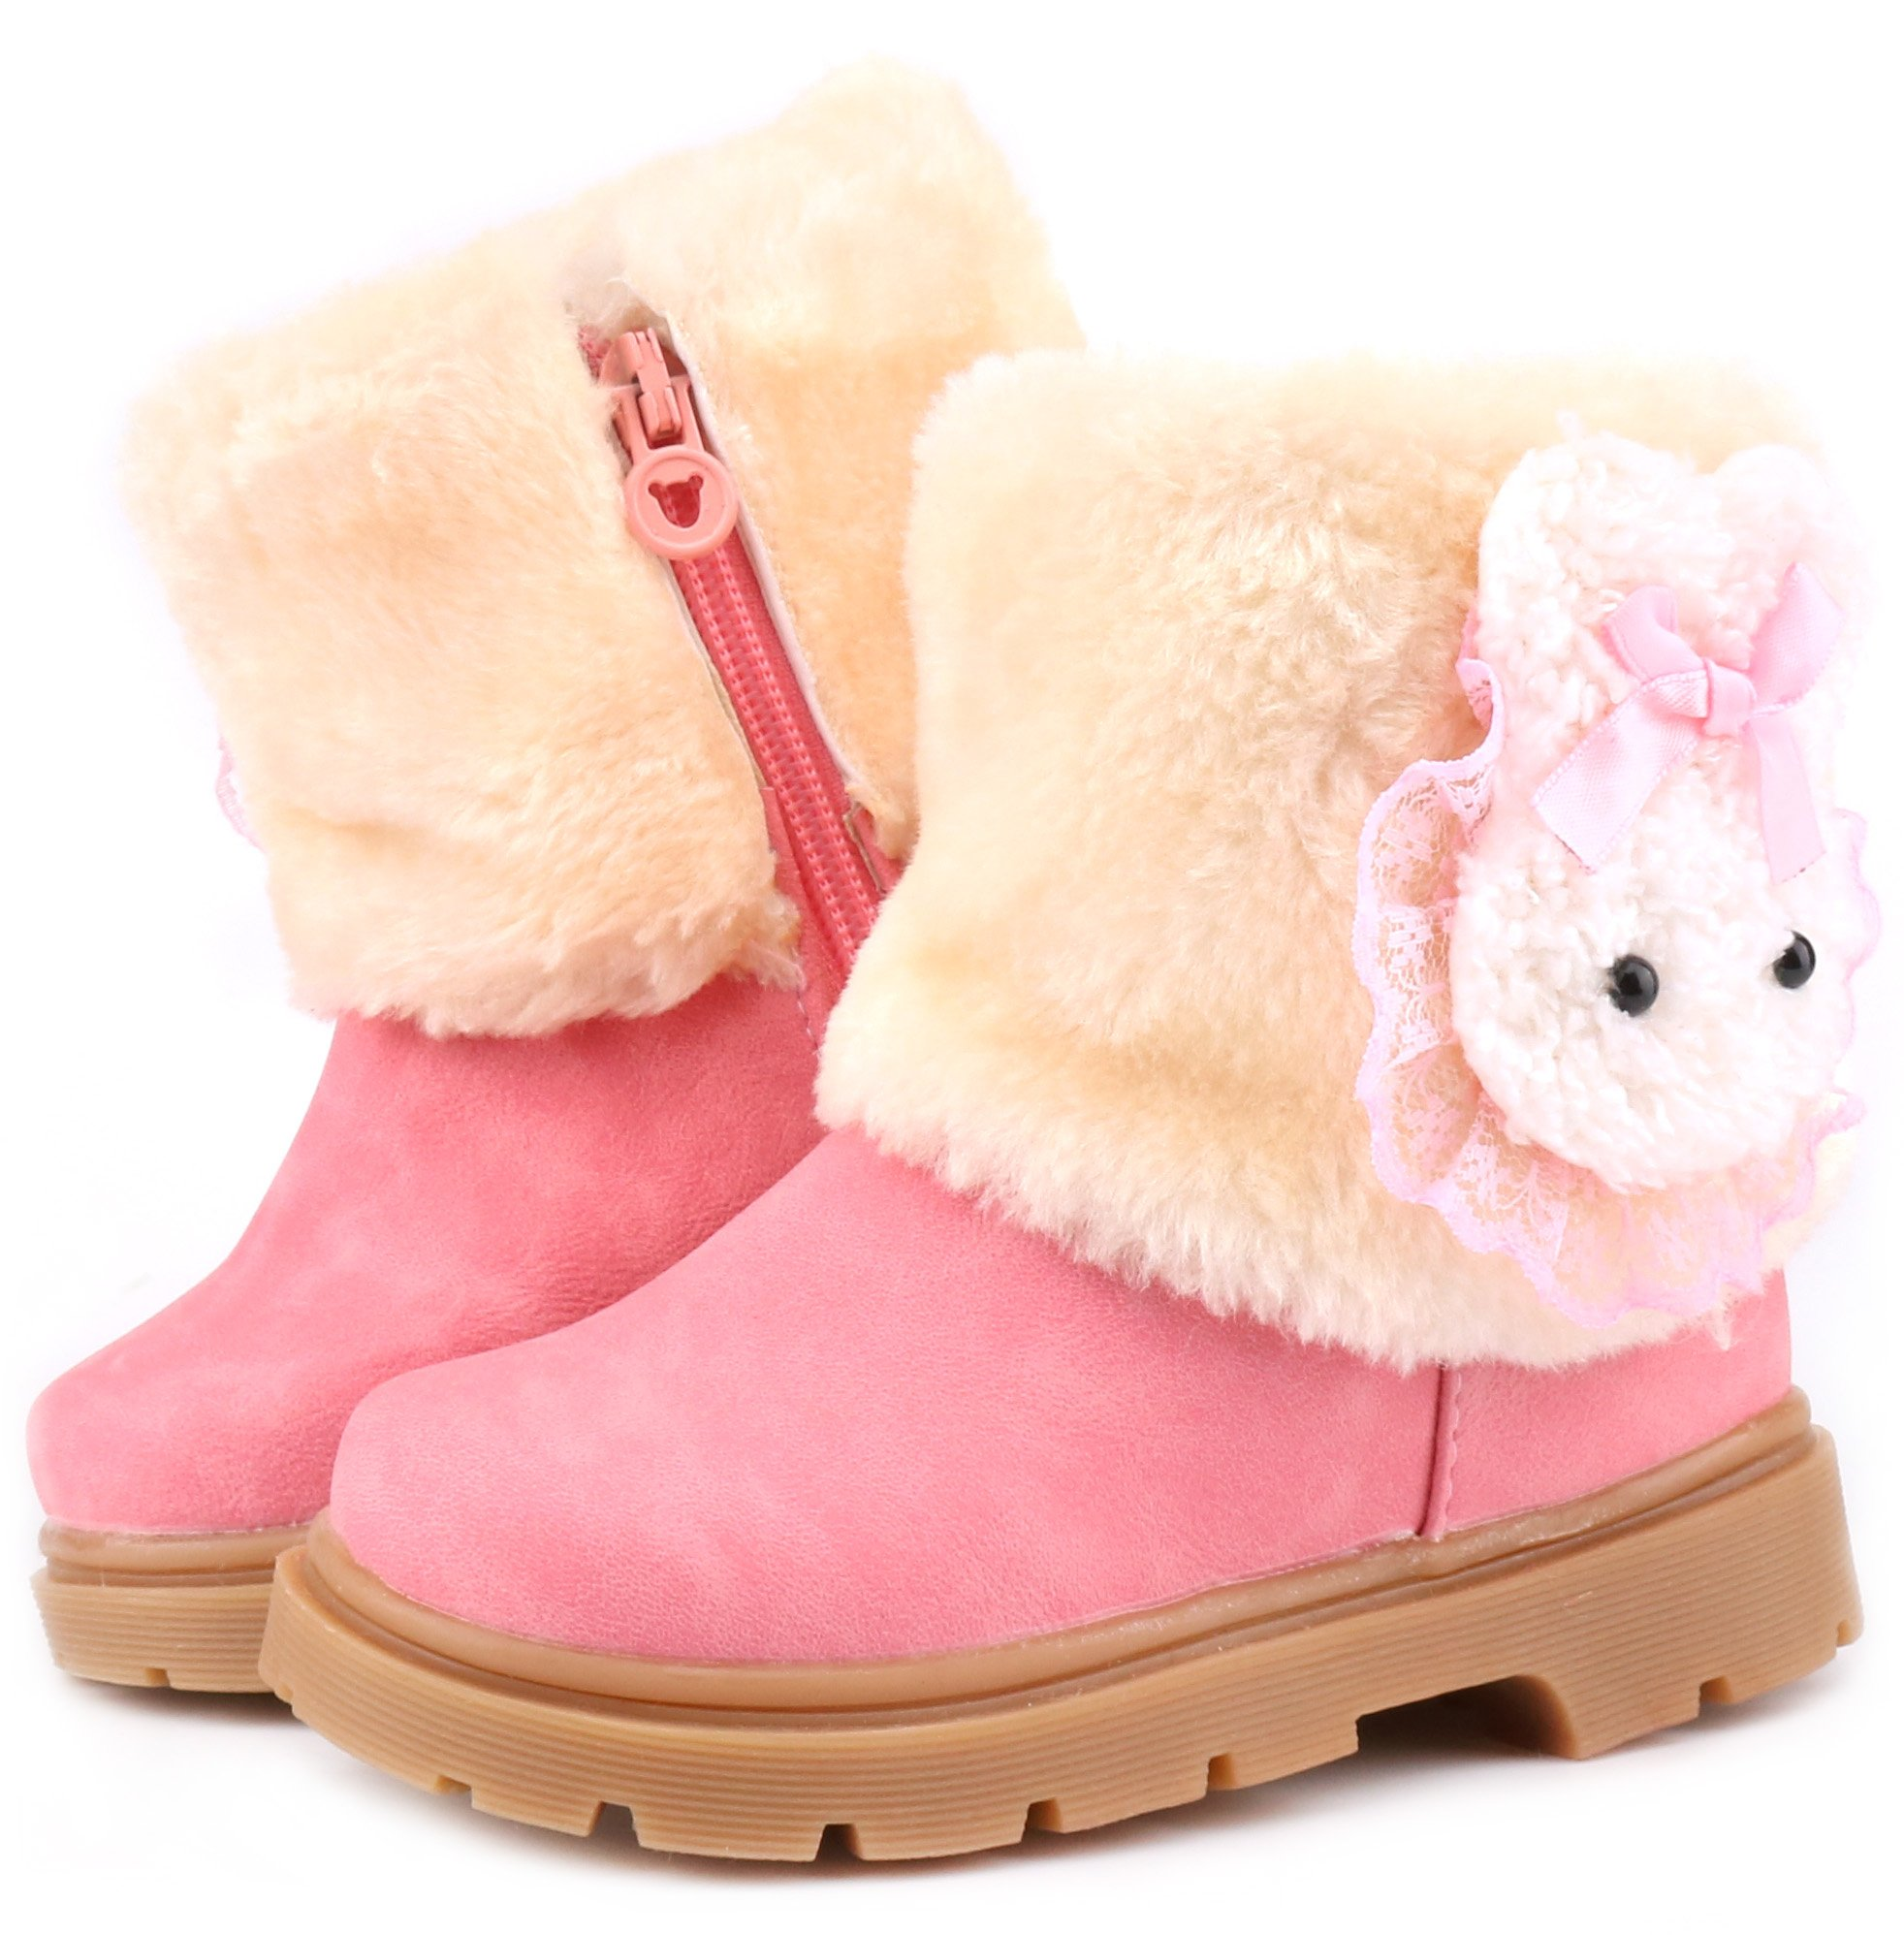 Femizee Baby Girls Infant Toddler Winter Fur Shoes Rabbit Snow Boots Booties,Pink,1013 CN29